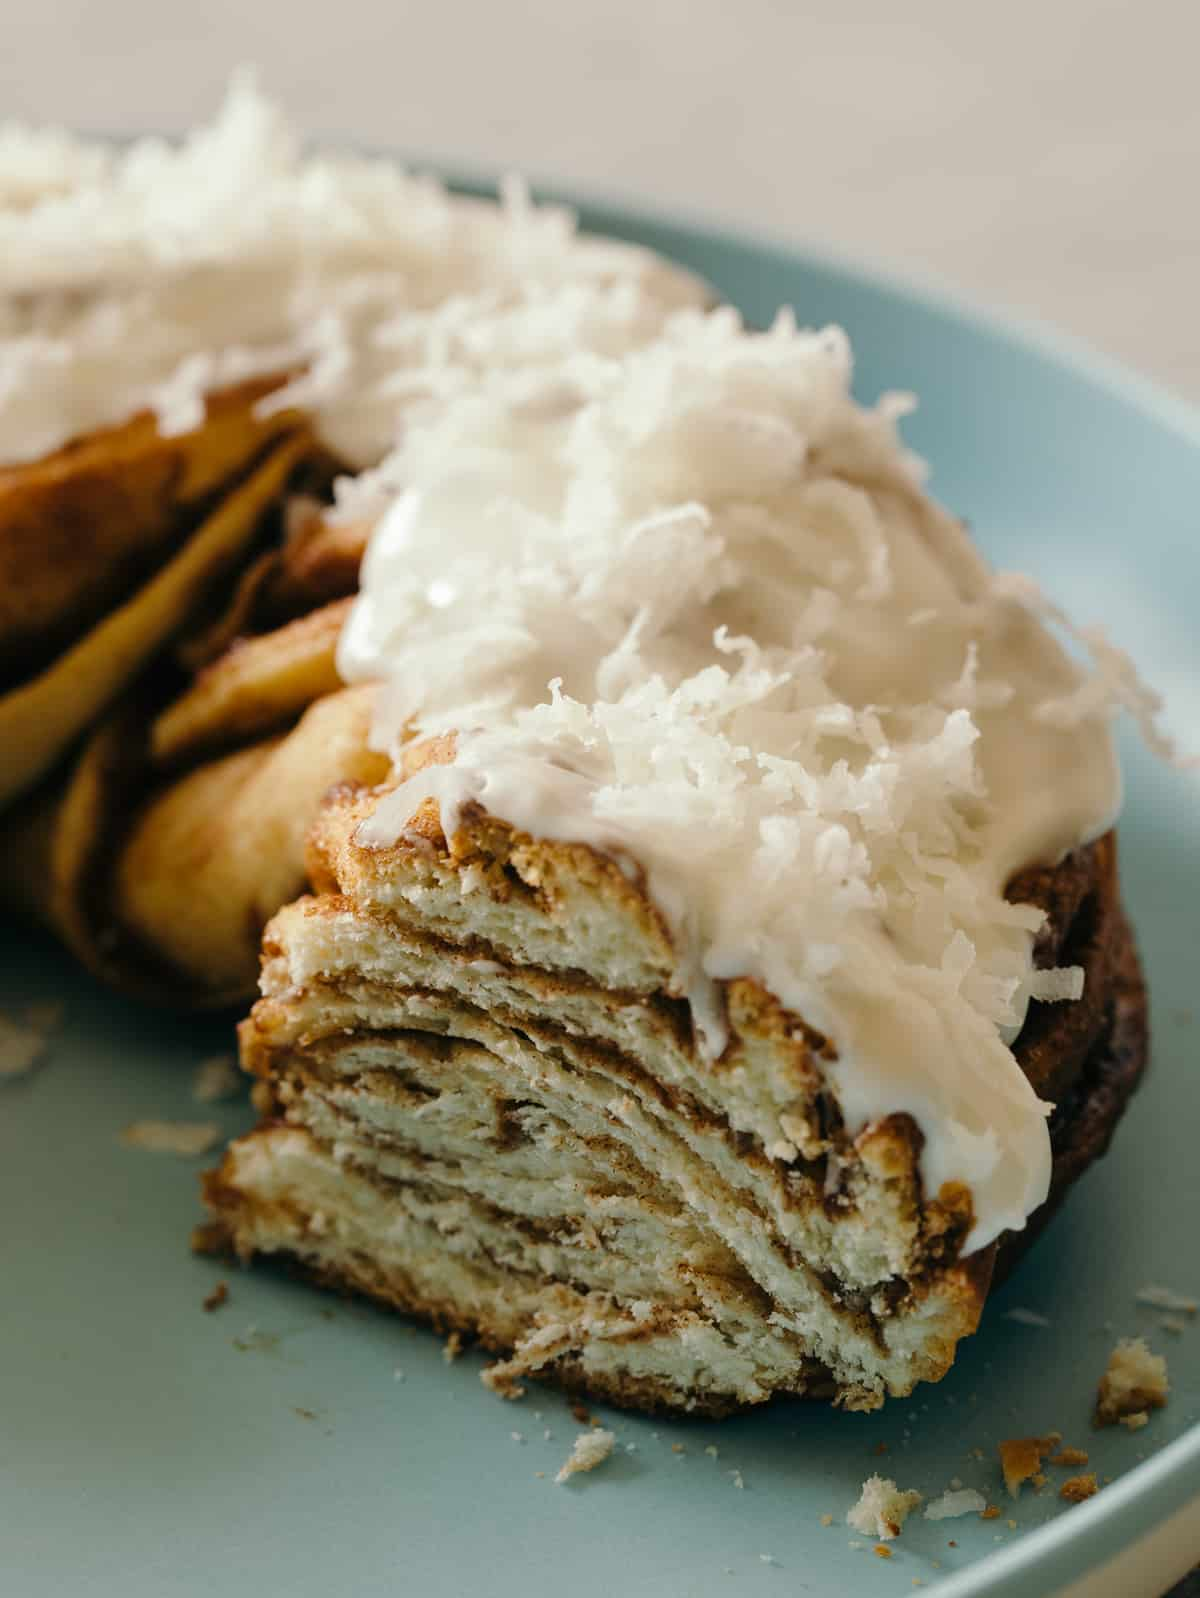 A close up of sliced brown butter braided cinnamon roll cake topped with shredded coconut.